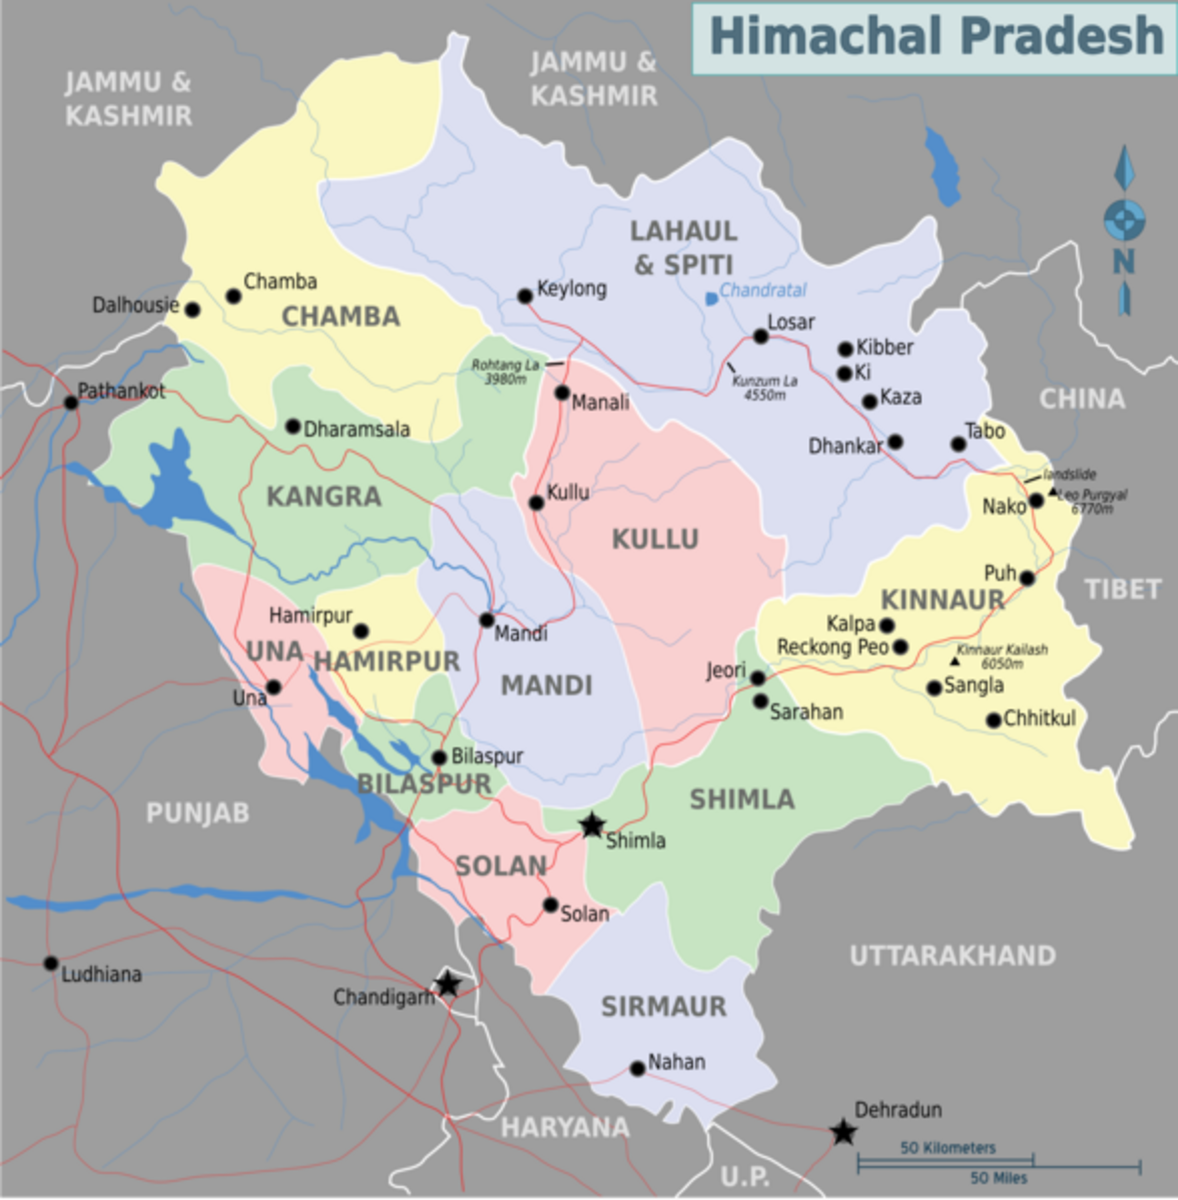 The map of Himachal Pradesh